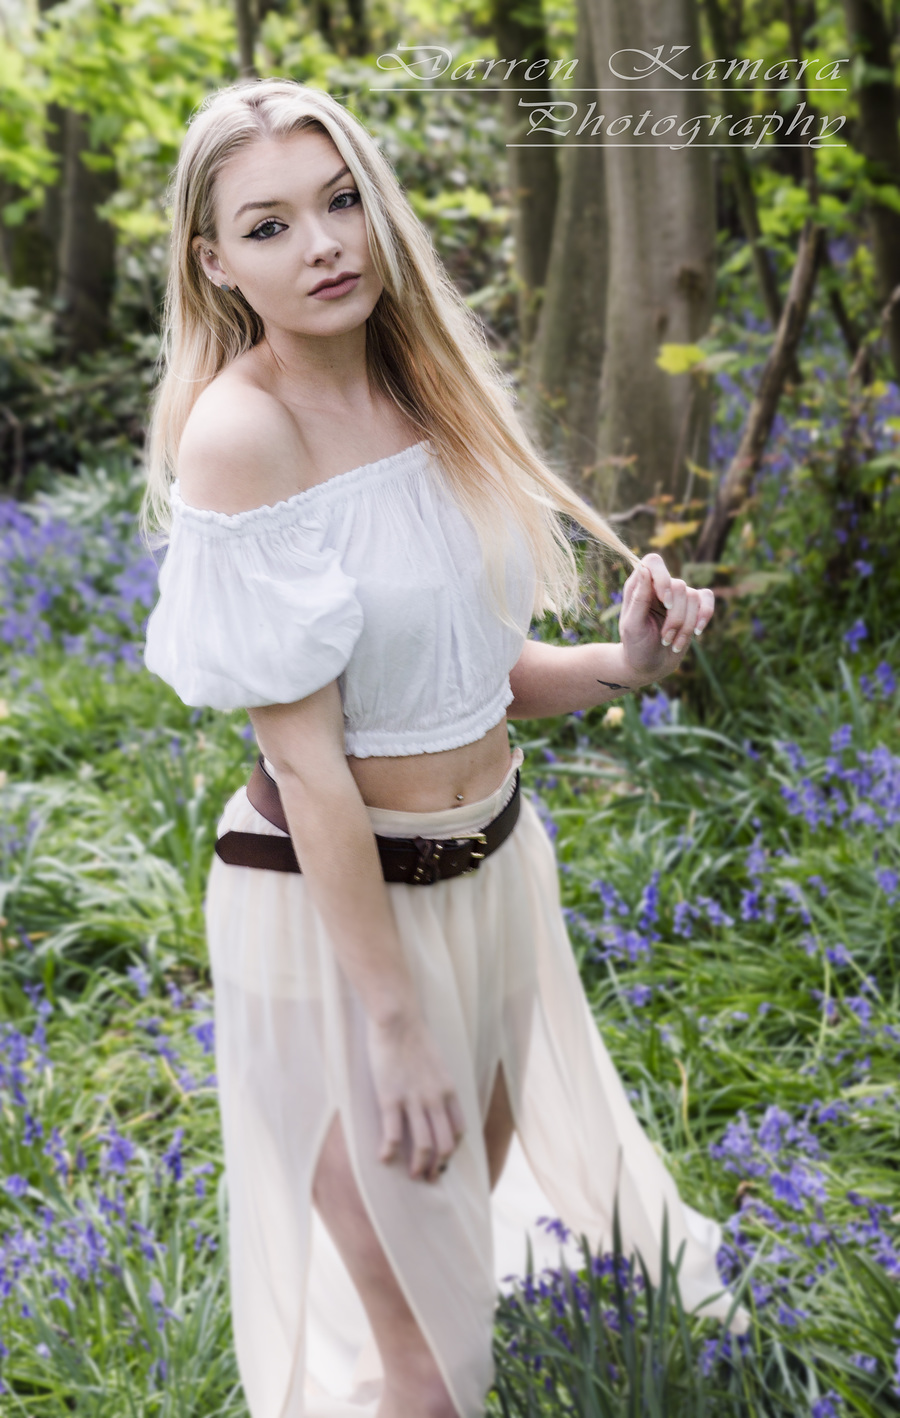 Babe in the woods / Photography by dekkx1, Post processing by dekkx1 / Uploaded 25th April 2017 @ 08:58 AM